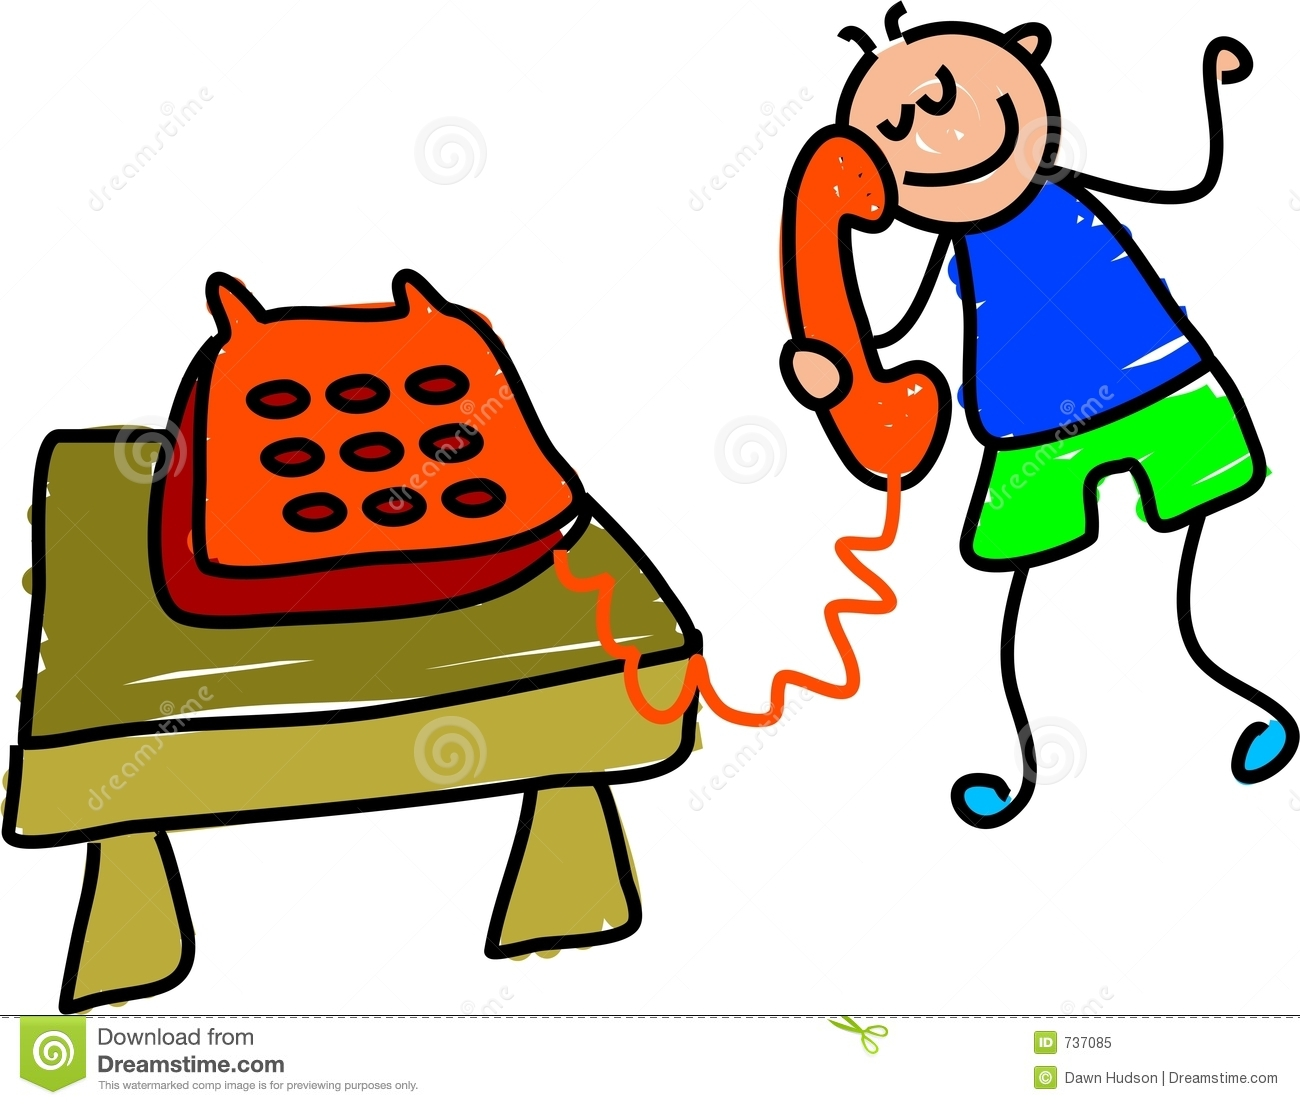 The Talking On Phone Clipart#1913223.